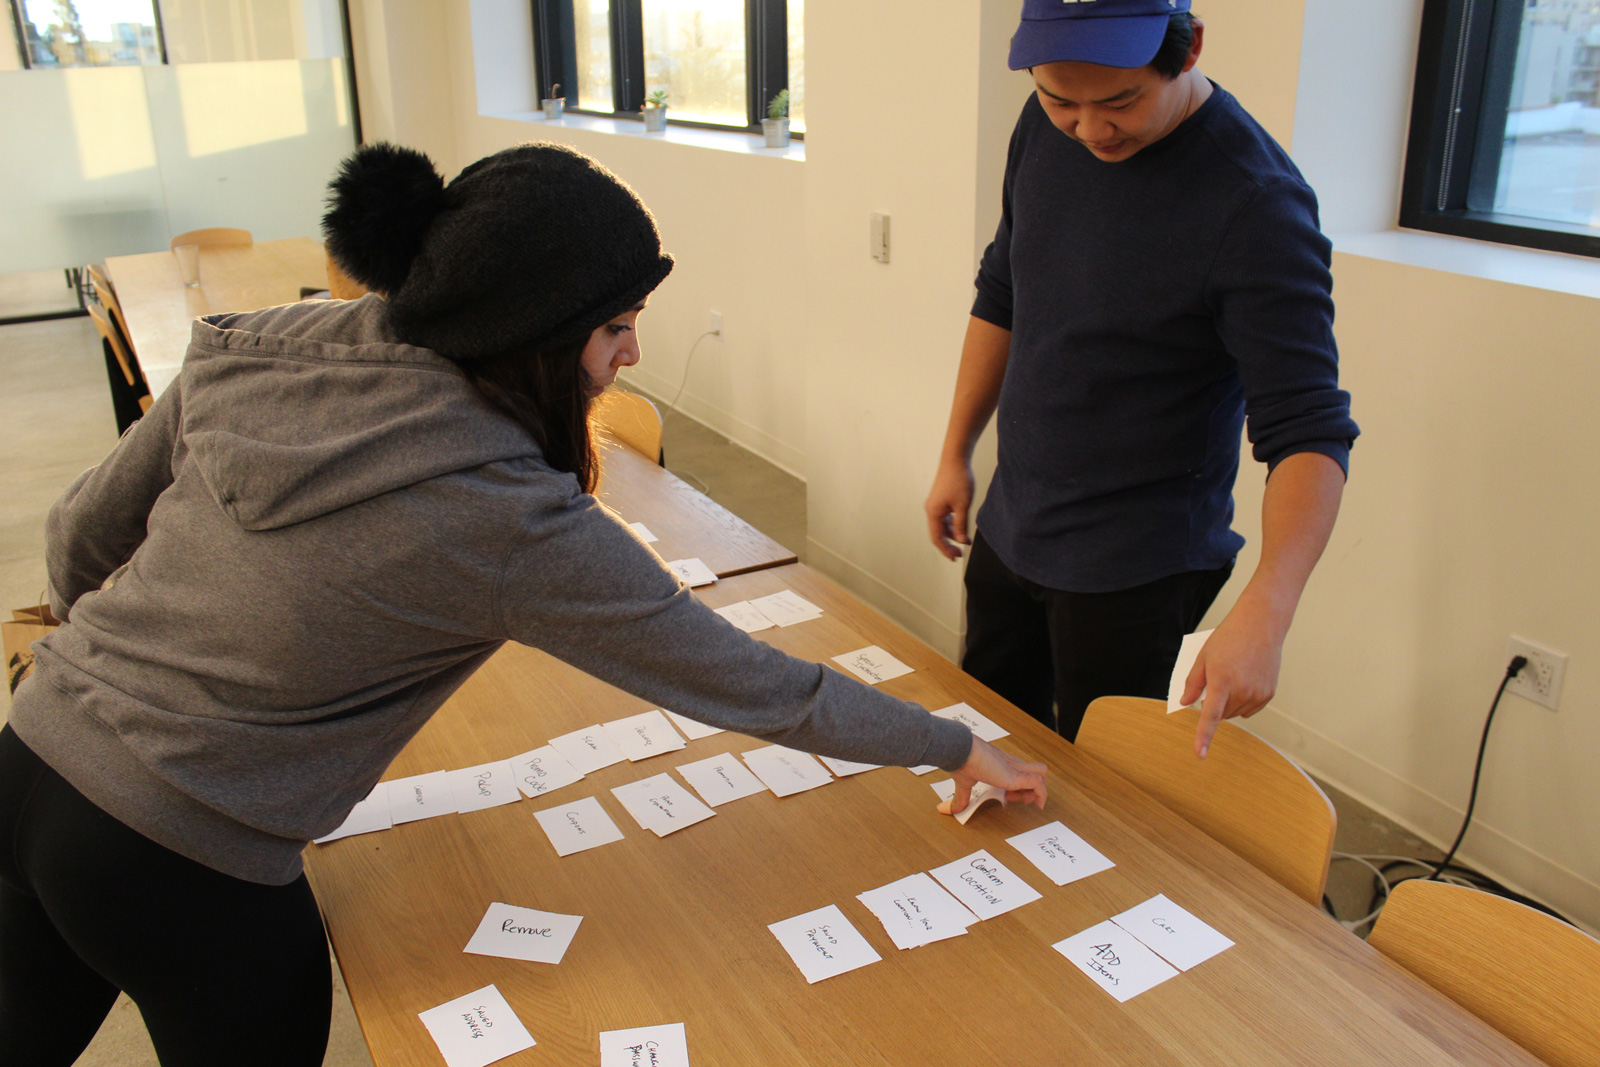 Card sorting helped me organize the navigation schema and information architecture